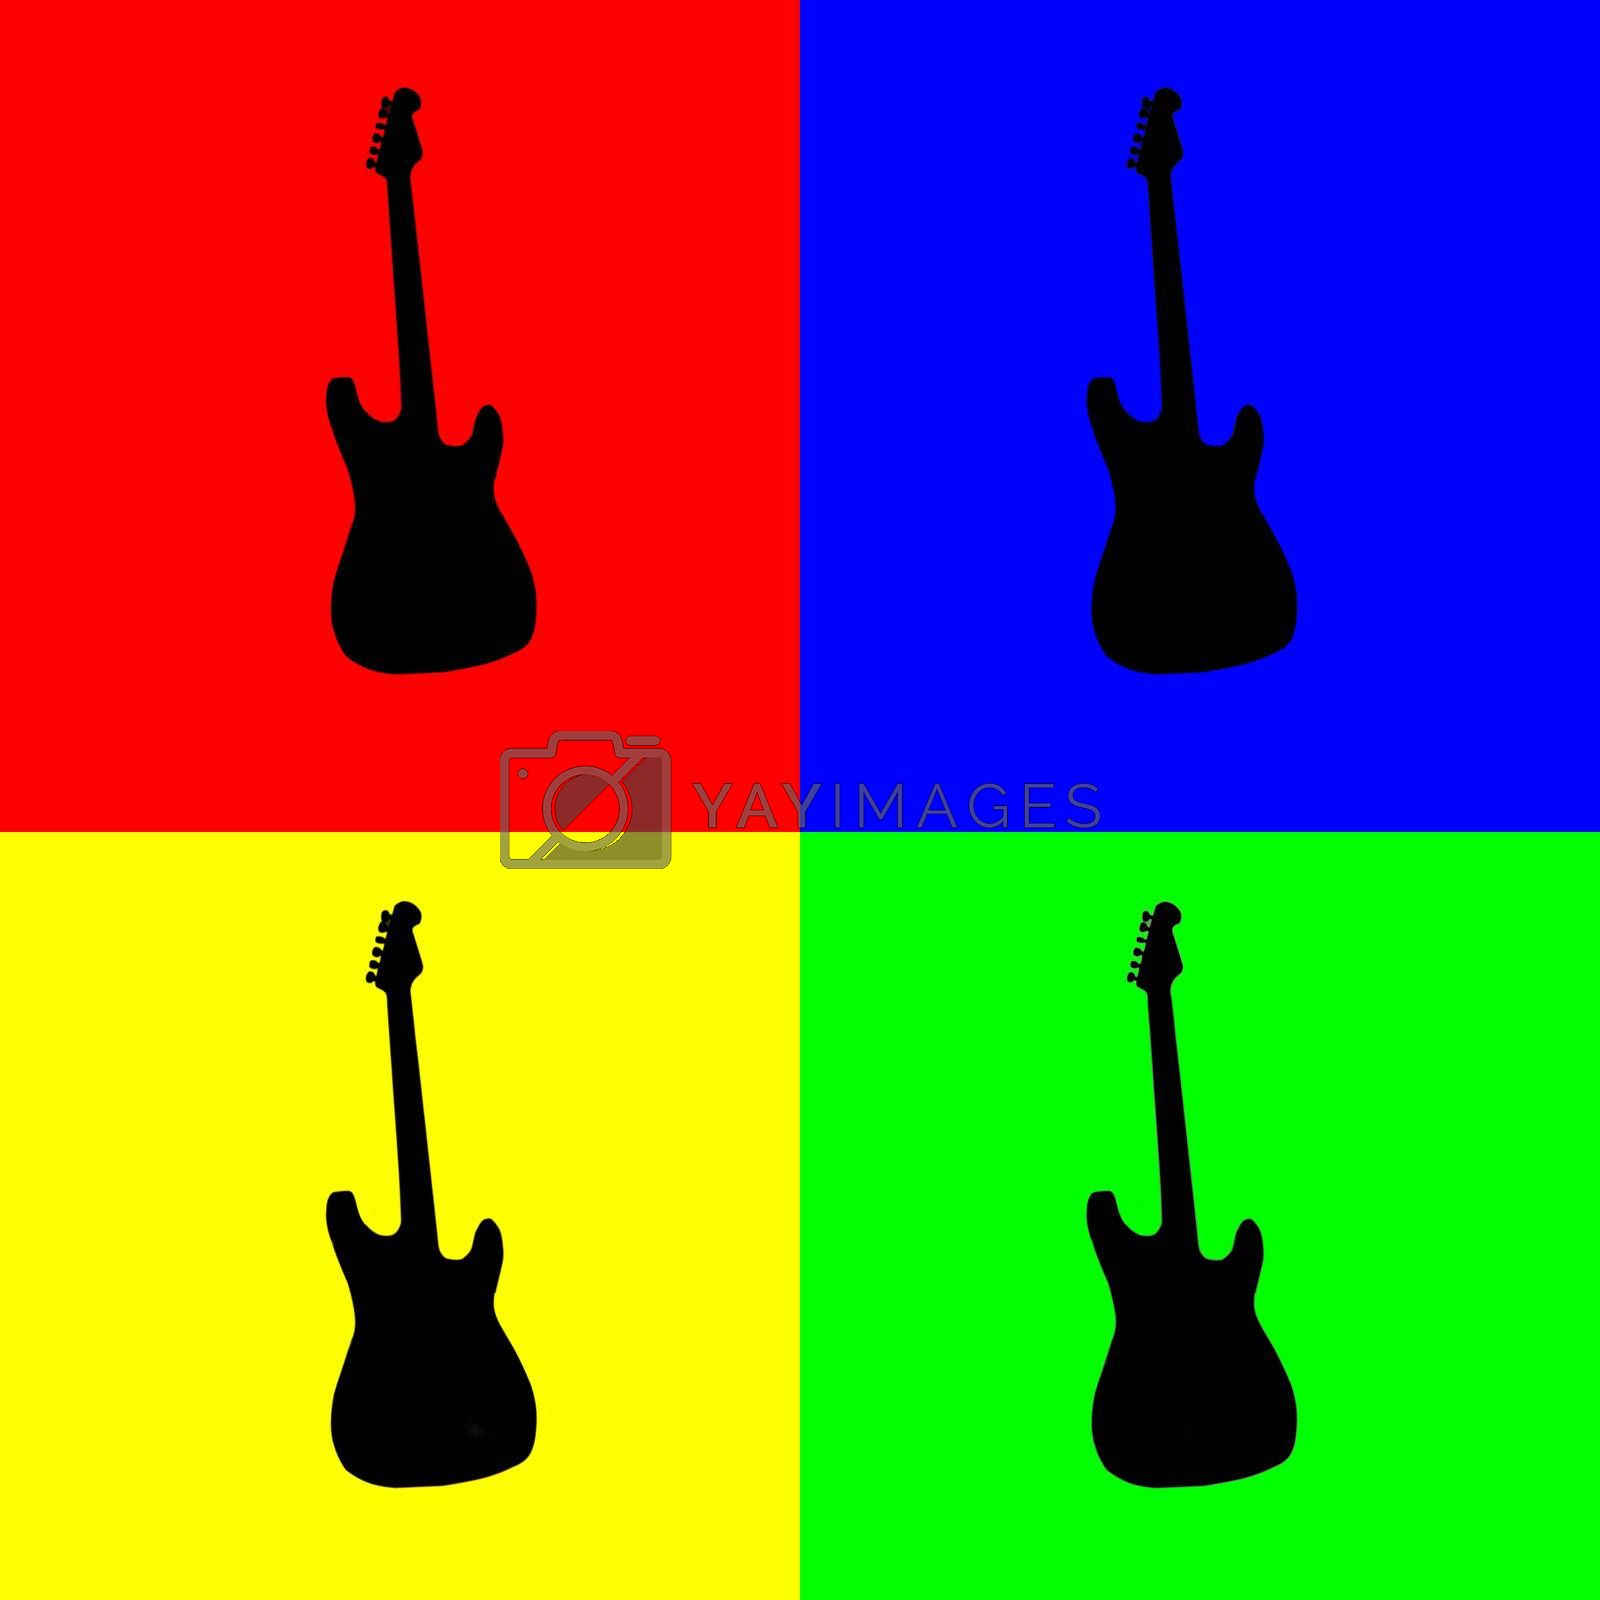 Royalty free image of Guitar by Koufax73